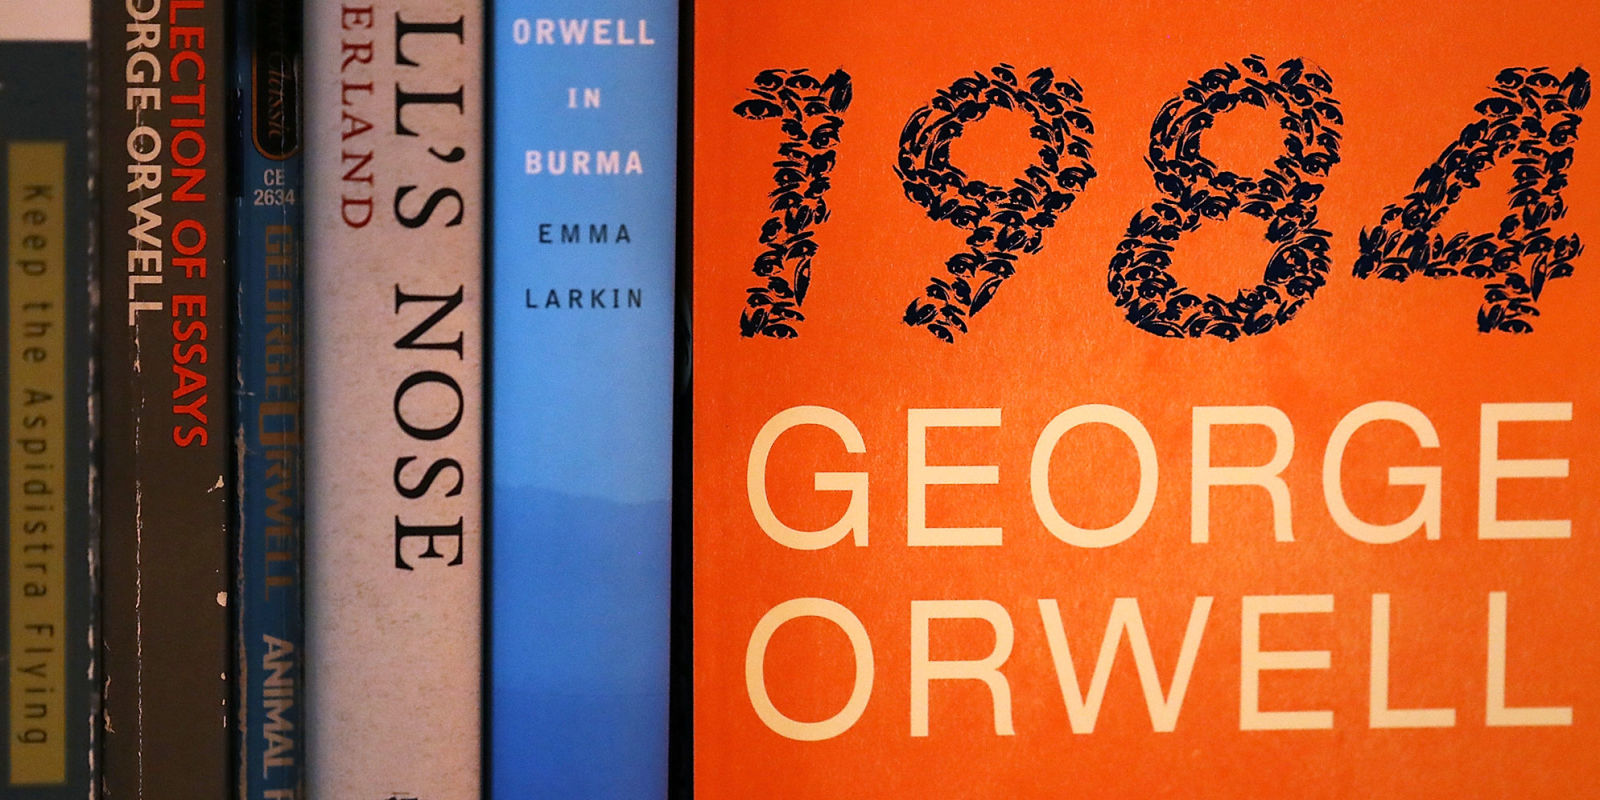 Choice Essay Example  By George Orwell S Increase In   Tops Amazon  By George  Orwell S Uc Application Essay Examples also Wildlife Conservation Essay  Essays  By George Orwell S Increase In   Tops  Essays For Kids